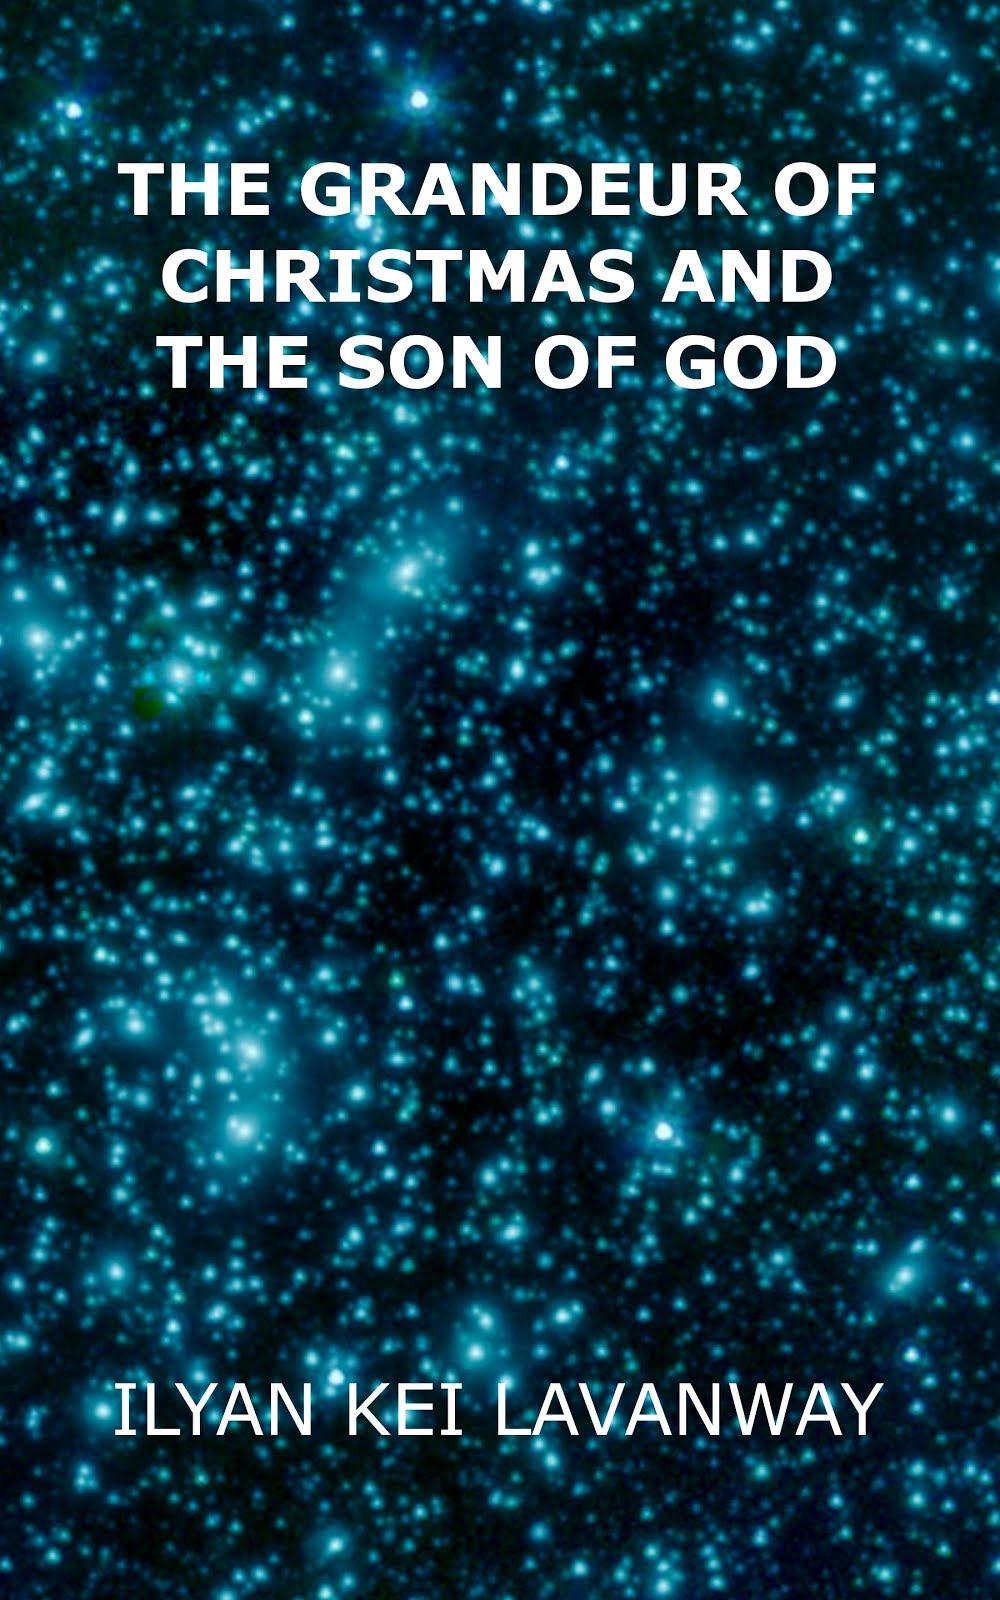 The Grandeur of Christmas and The Son of God, in print and Kindle at Amazon